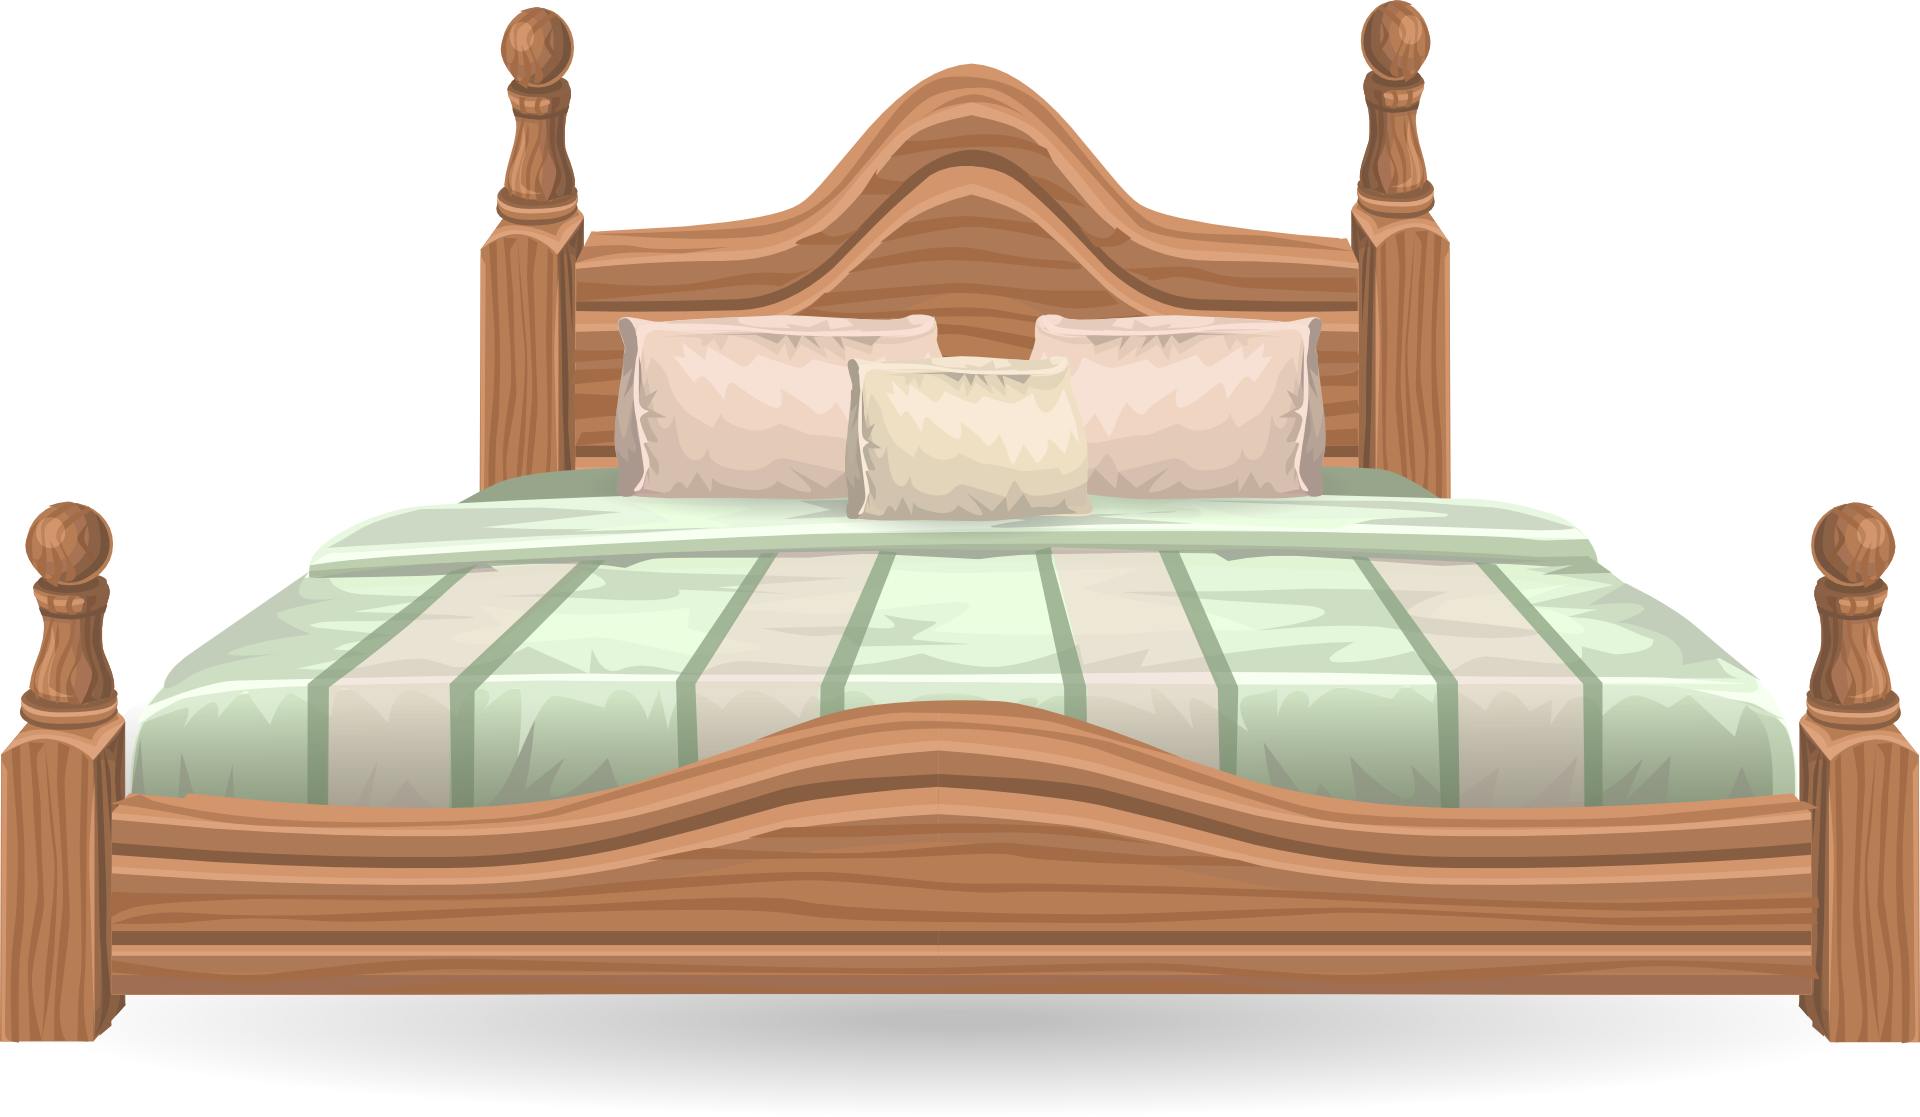 vector royalty free download Nightstand Bedroom furniture Clip art